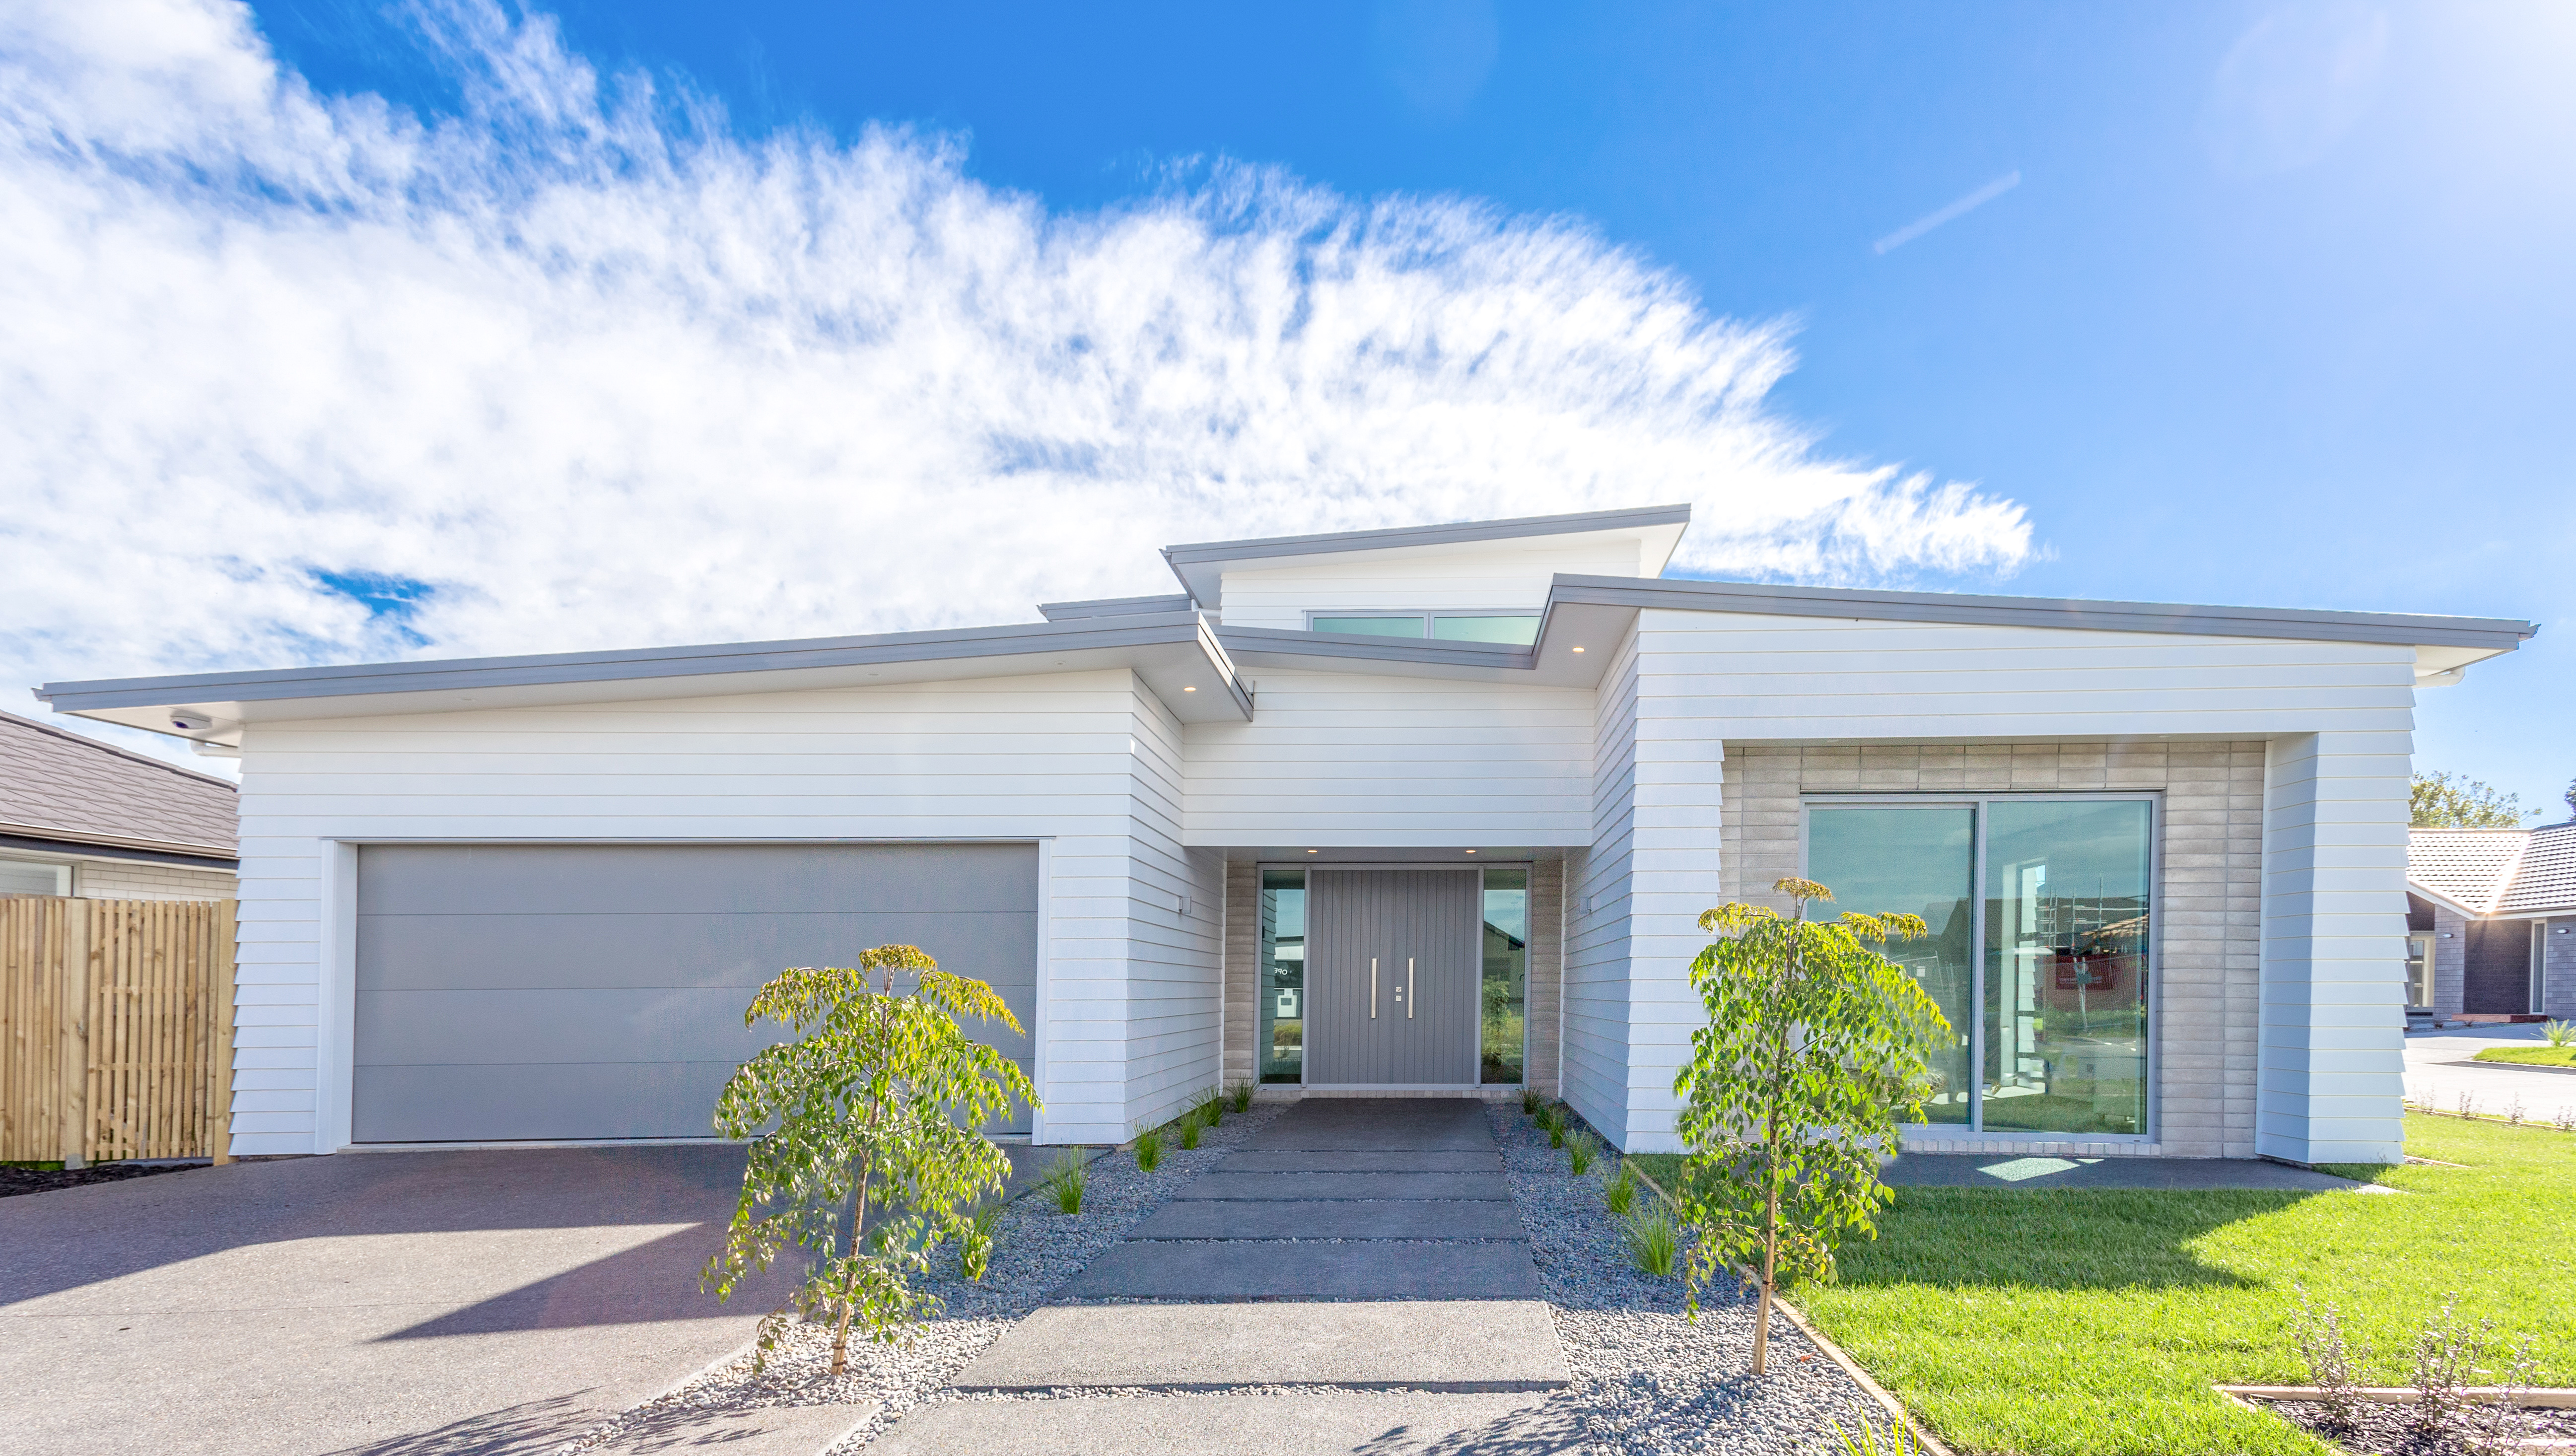 home i anthem homes waikato master builders new home design